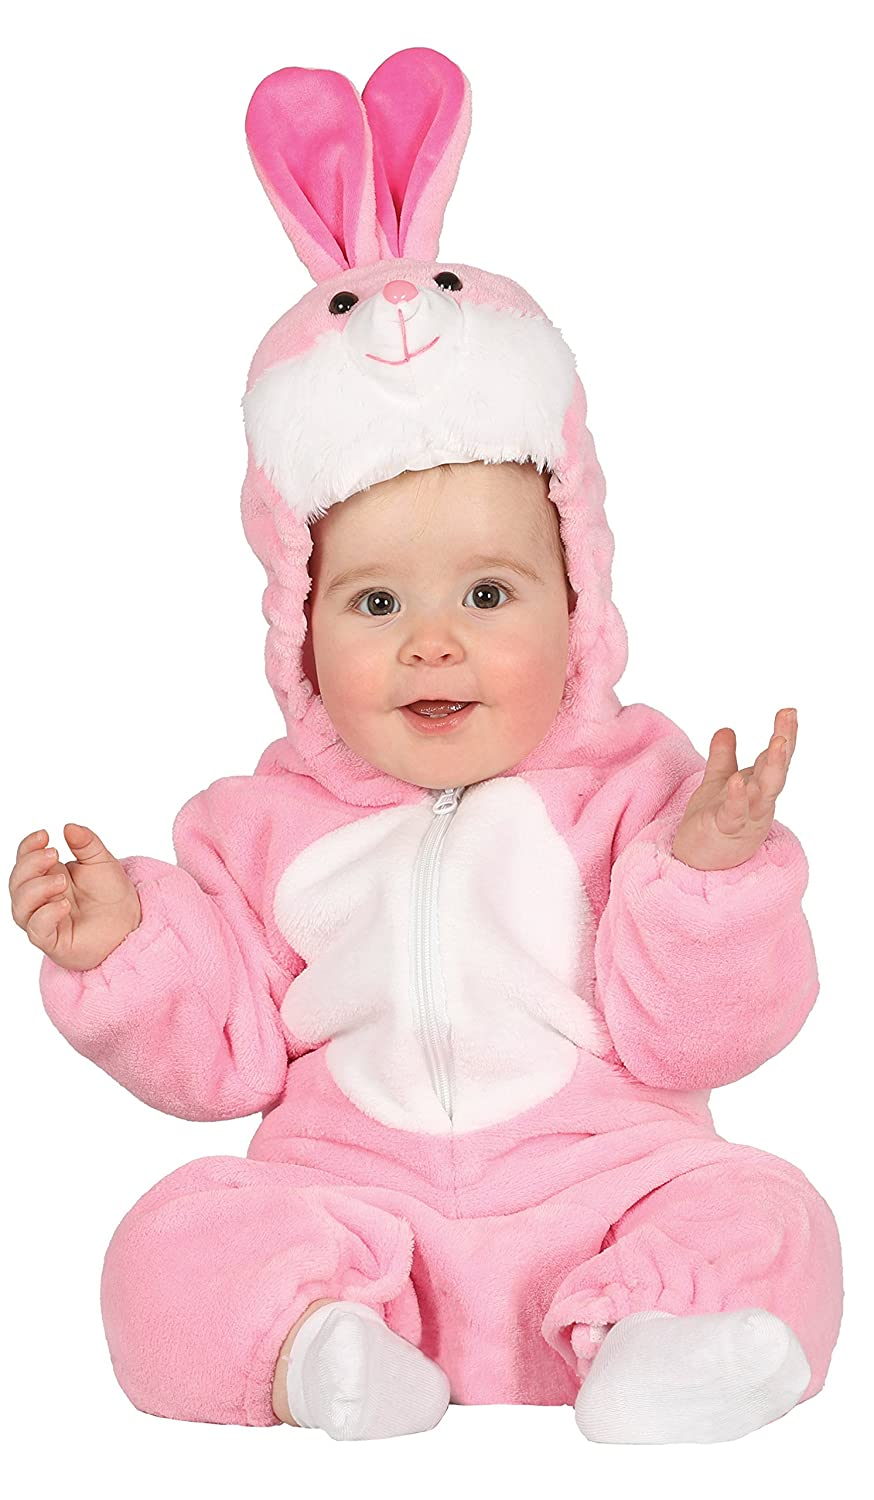 guirca Costume - Bunny Baby, Size 6 -12 Months (87586.0): Amazon.co ...